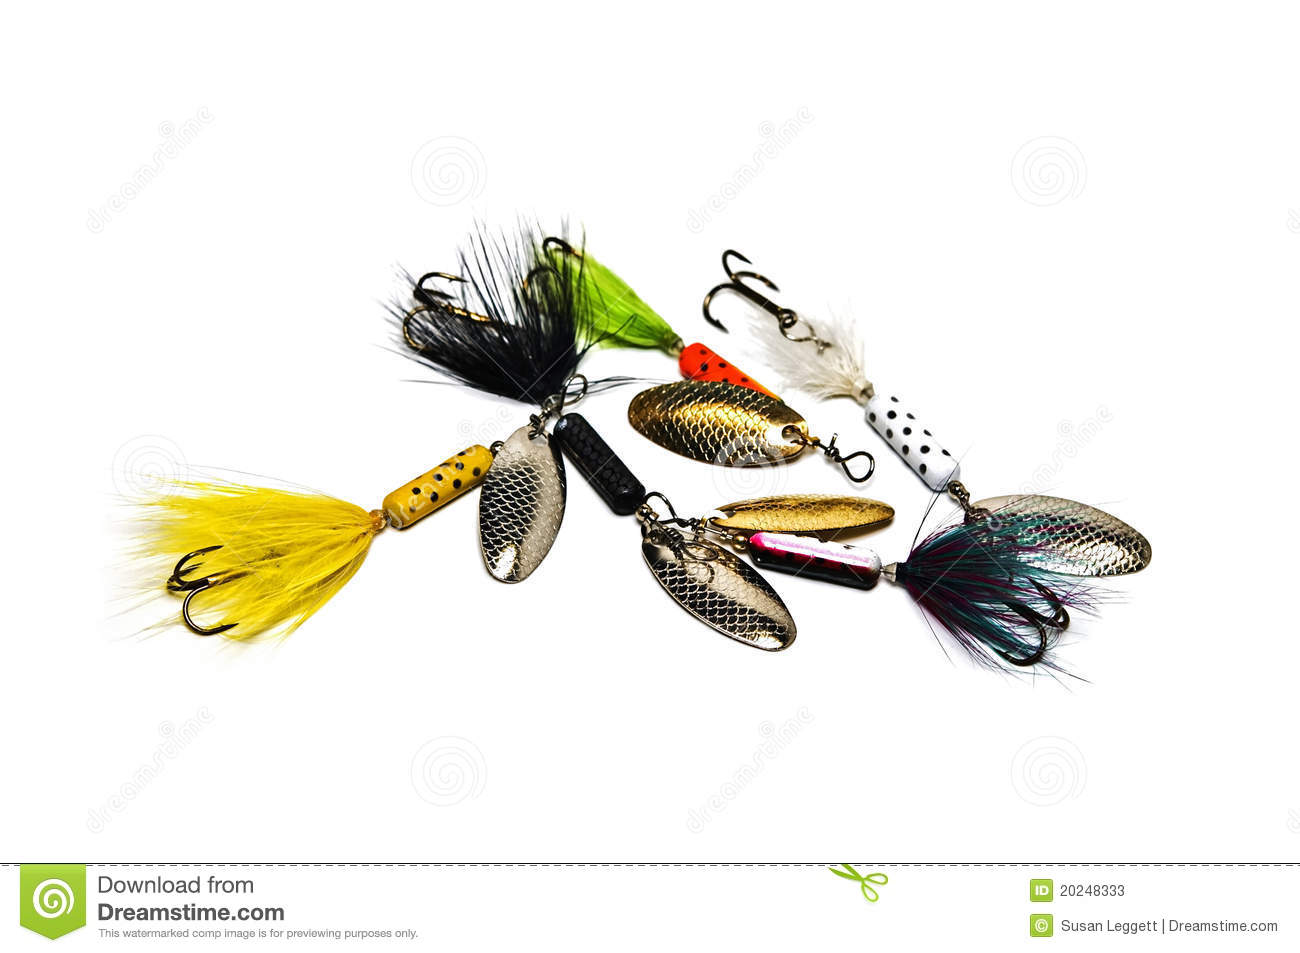 Freshwater fishing lures stock photos image 20248333 for Freshwater fishing lures